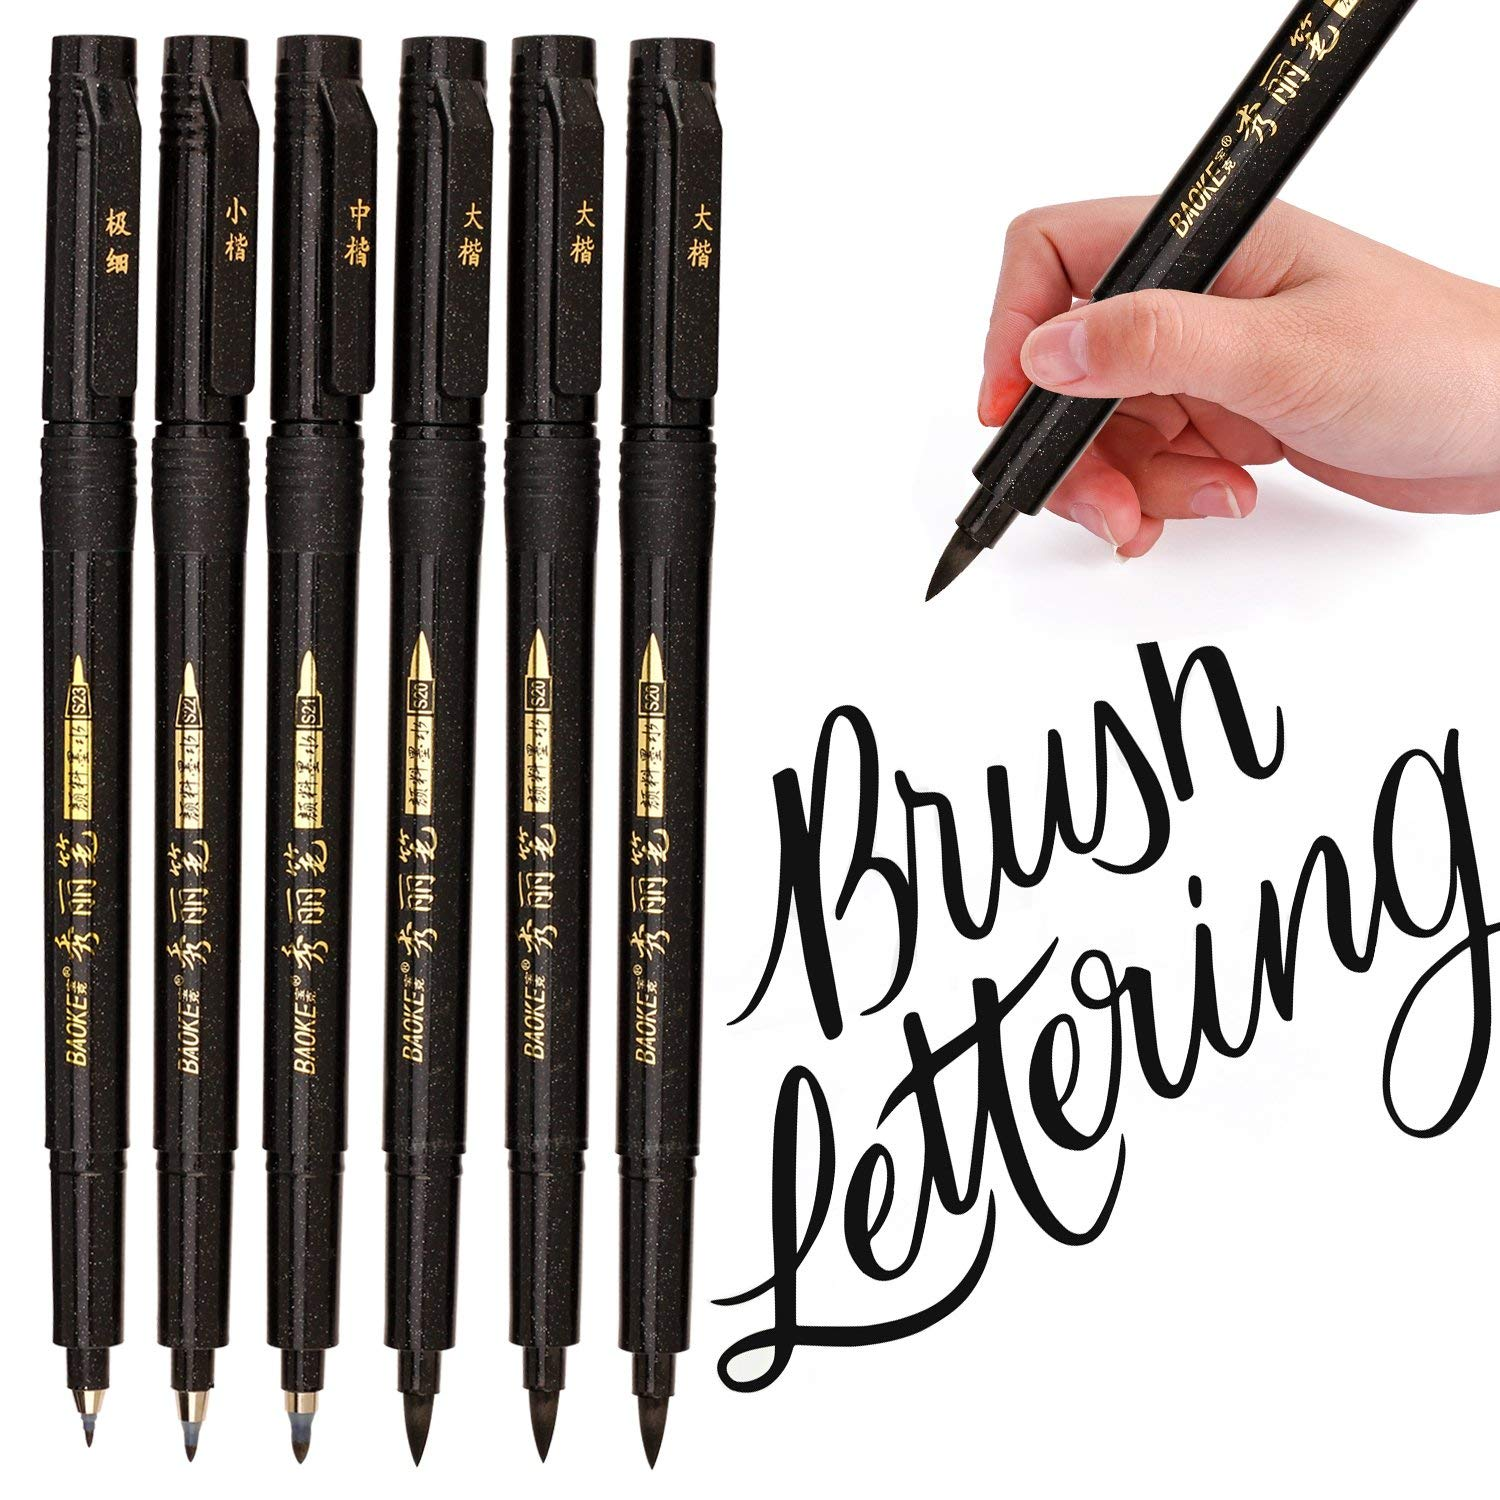 Lettering Pens, Refill Brush Calligraphy Markers Set - 4 Size, for Beginners Writing, Art Drawings, and DIY Bullet JournalLettering Pens, Refill Brush Calligraphy Markers Set - 4 Size, for Beginners Writing, Art Drawings, and DIY Bullet Journal